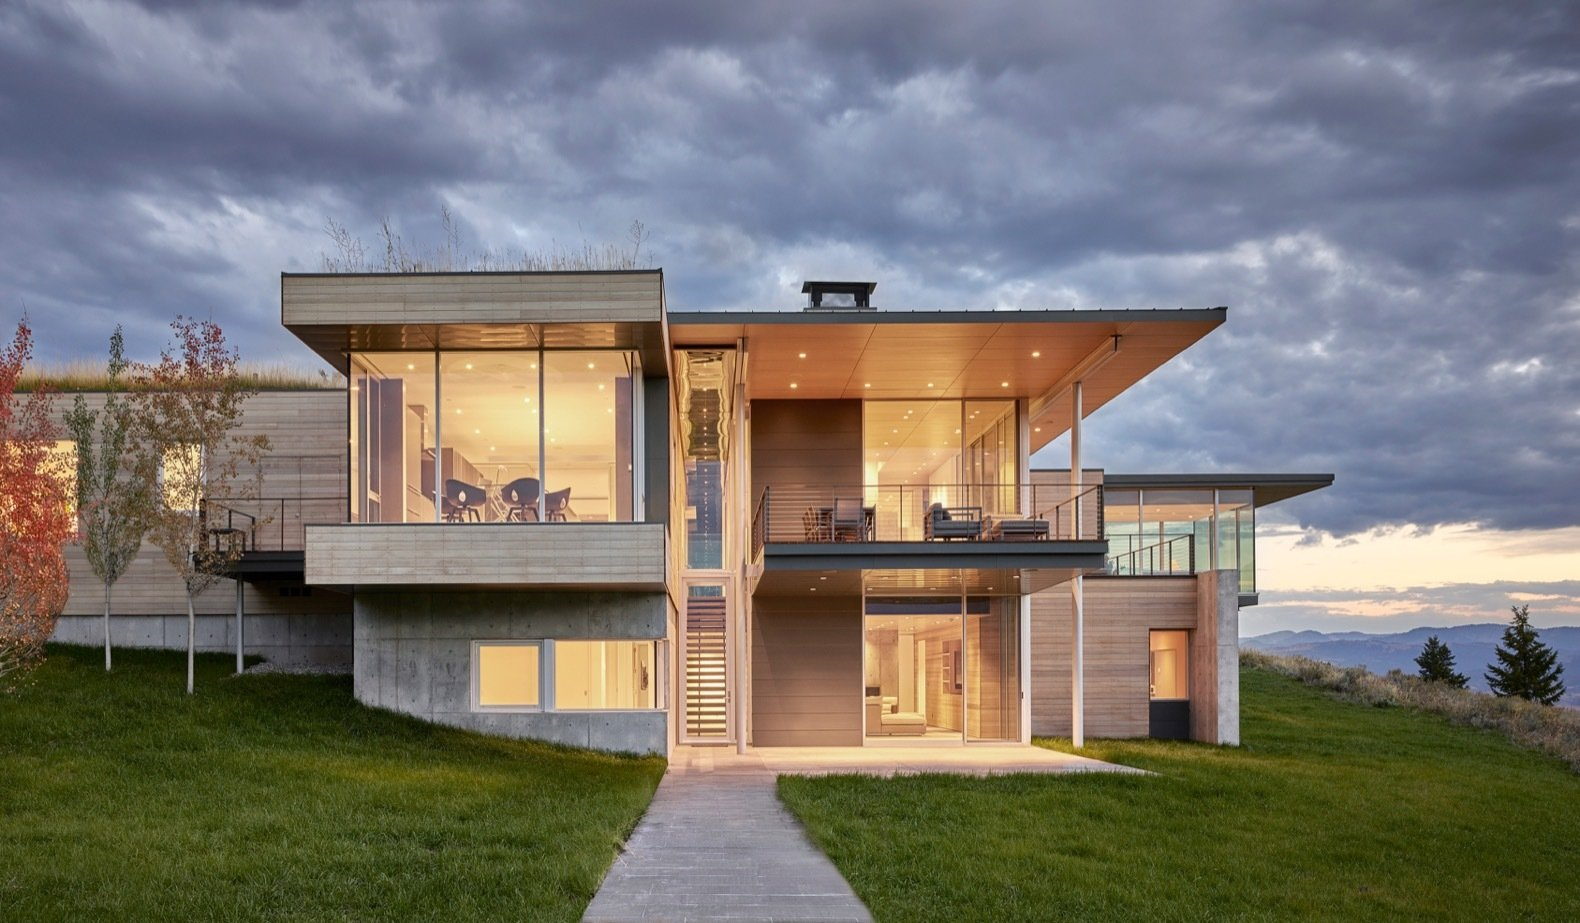 Exterior, Wood Siding Material, Metal Roof Material, House Building Type, Metal Siding Material, Flat RoofLine, Concrete Siding Material, and Green Roof Material The elegant retreat combines contemplative spaces with a sense of drama.   Photo 1 of 17 in A Modern House Accentuates a Sensational Wyoming Landscape